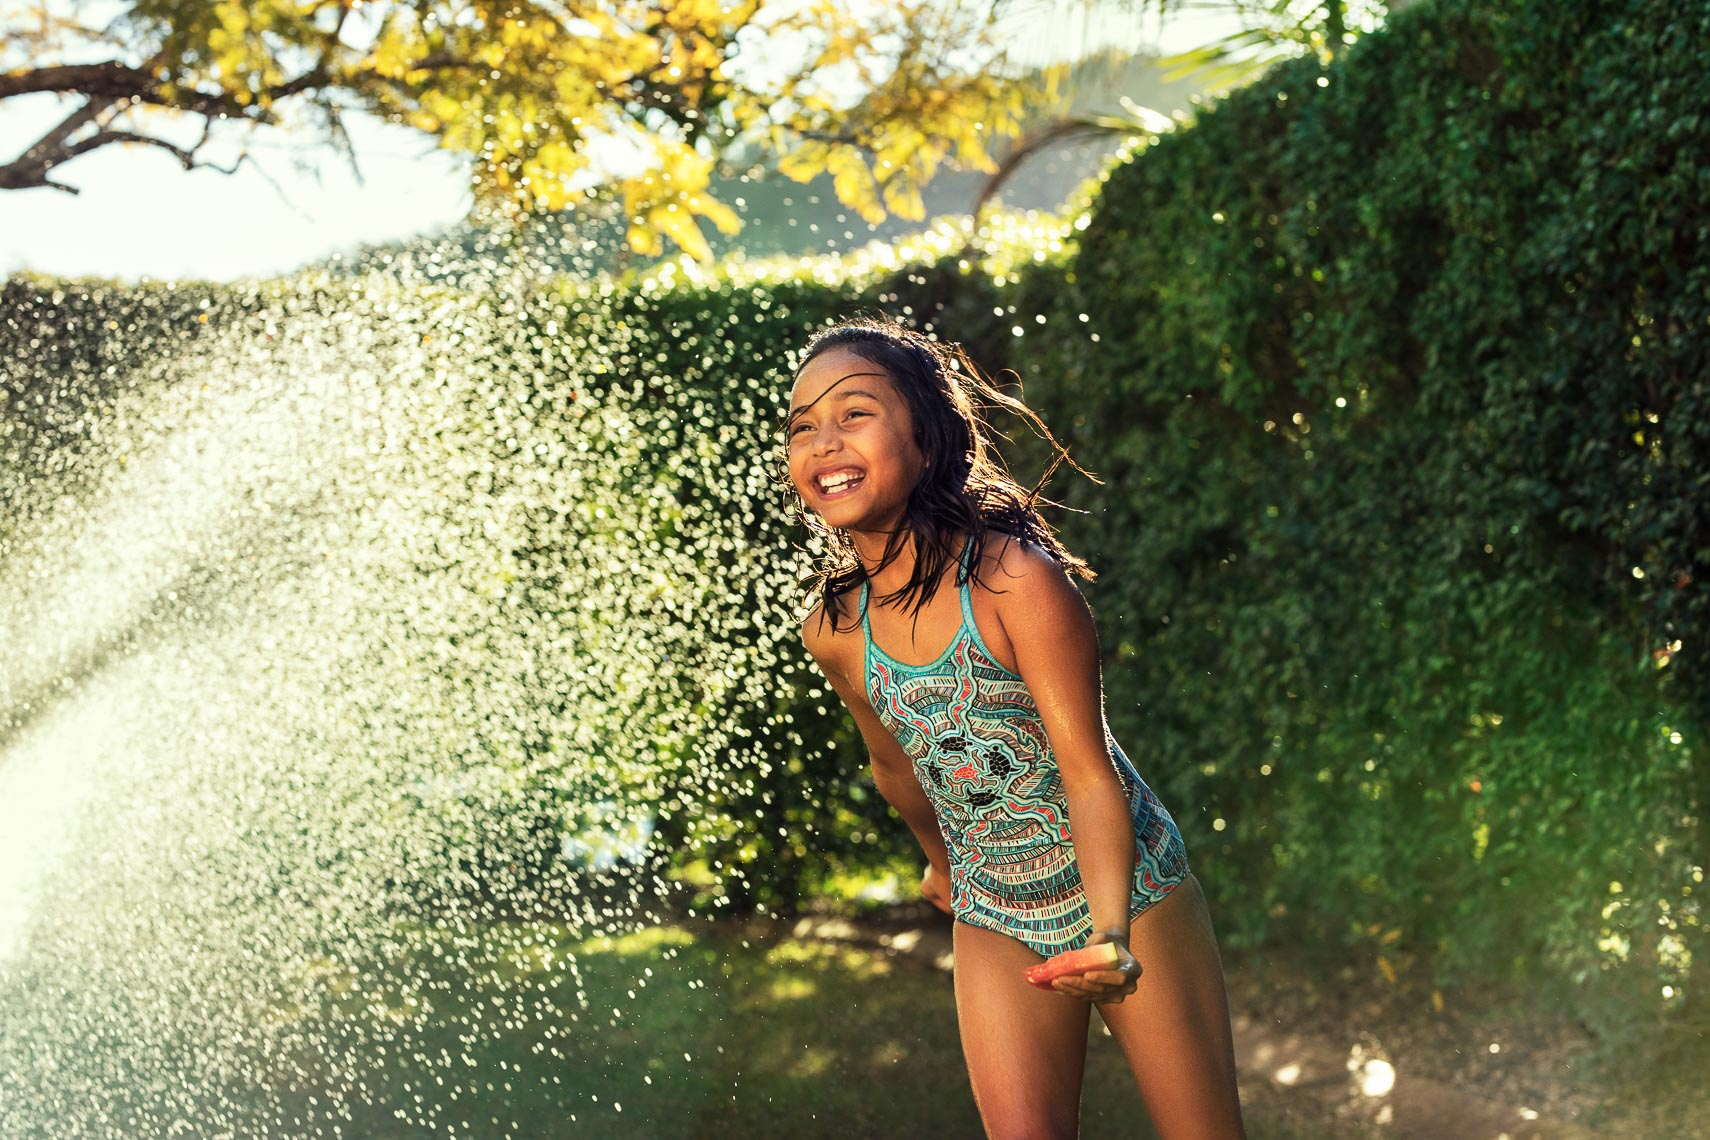 A girl running through water with fruit in her hand for Heritage Bank during an advertising campaign